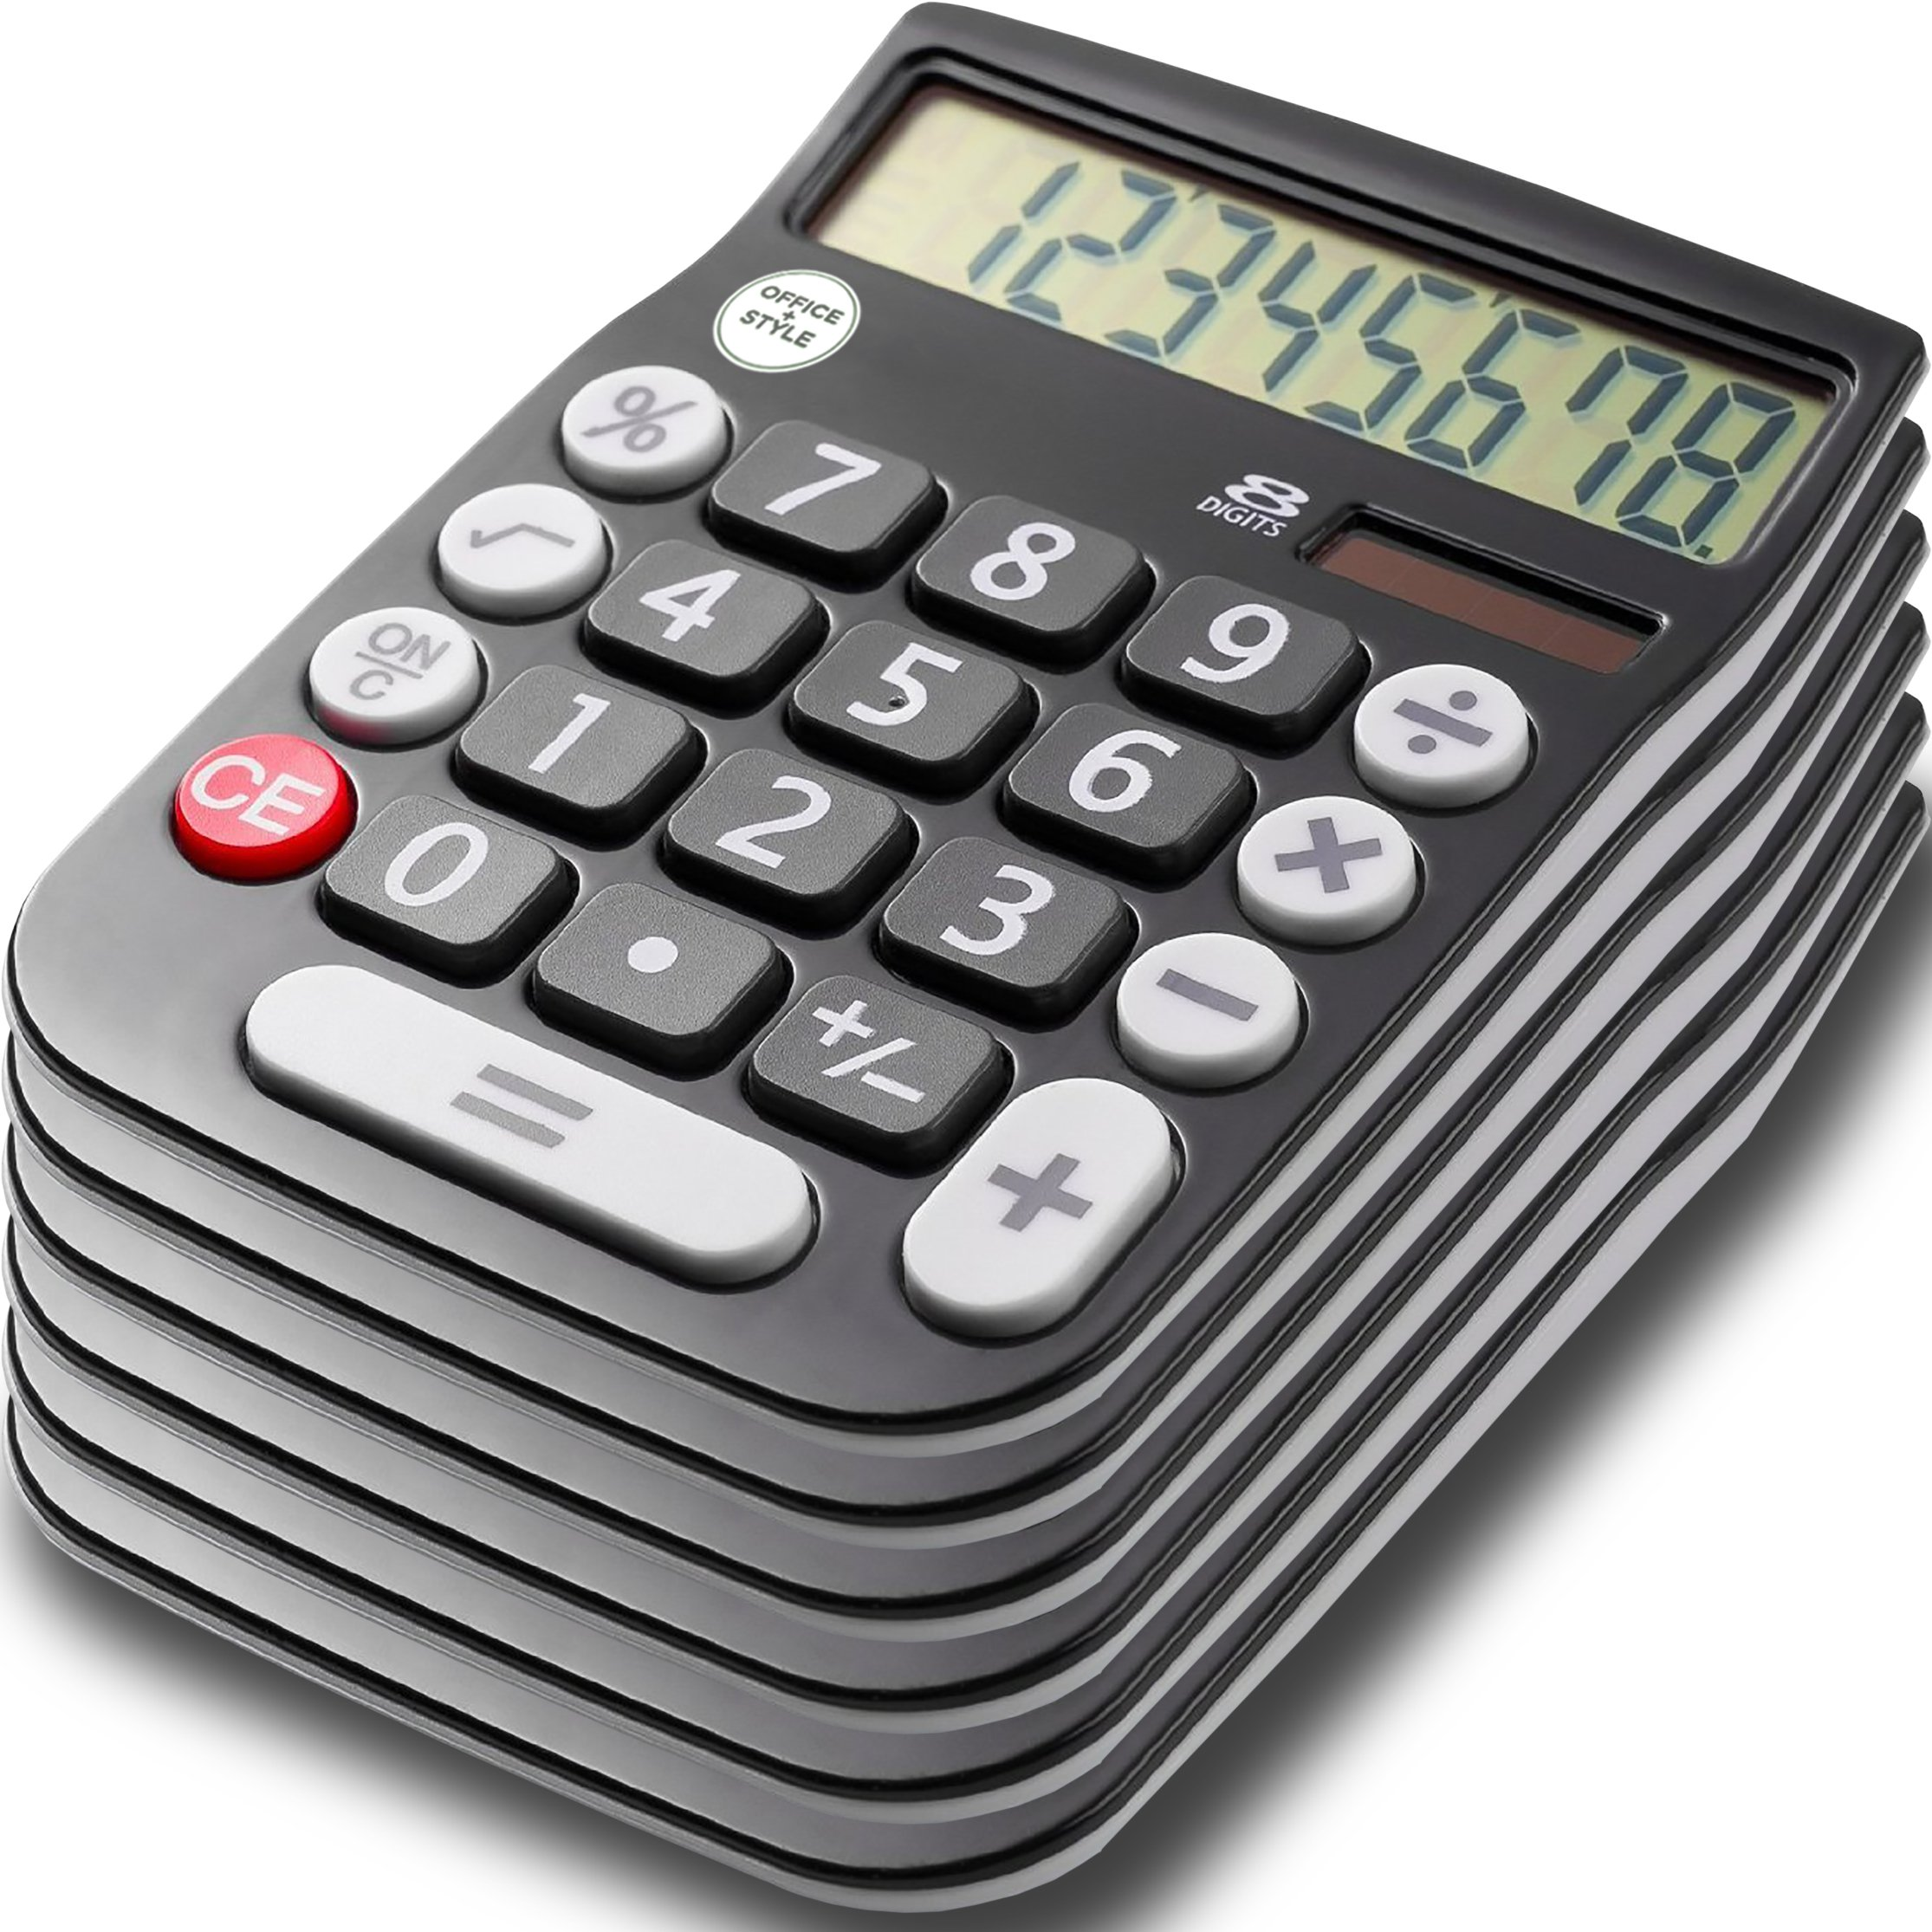 Office Style 8 Digit Dual Powered Desktop Calculator, Large LCD Display, Black (Pack Of 6) by Office Style